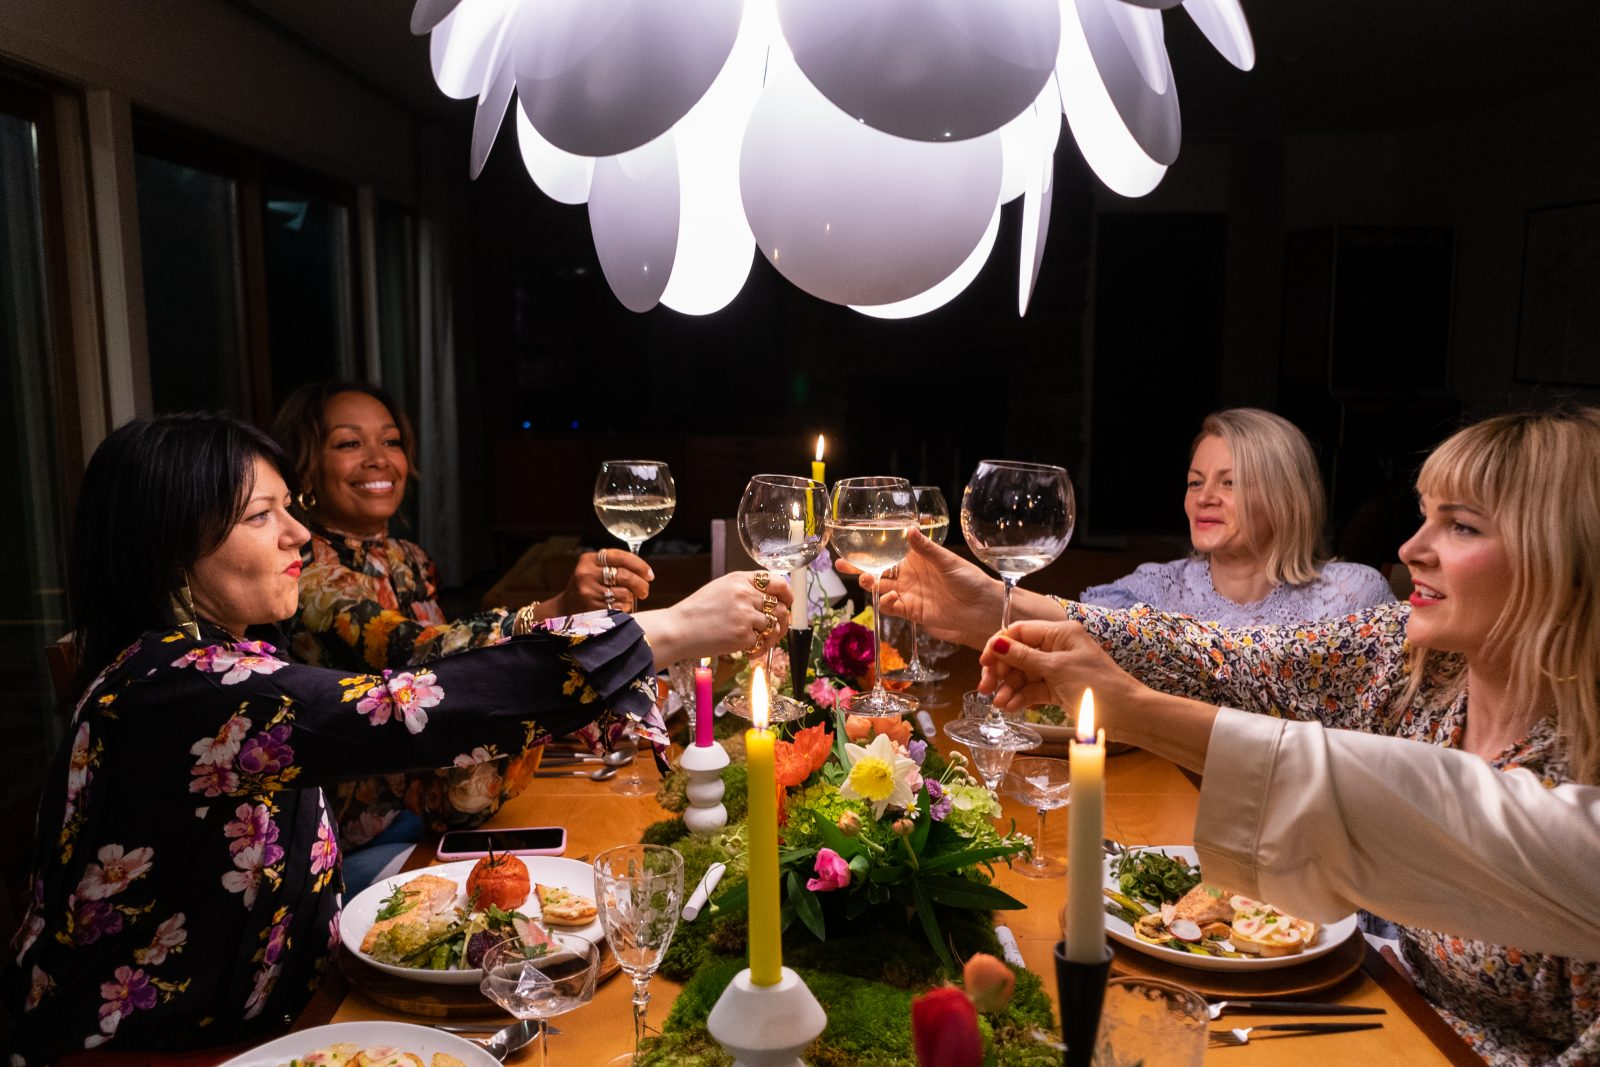 Girlfriends toasting champagne